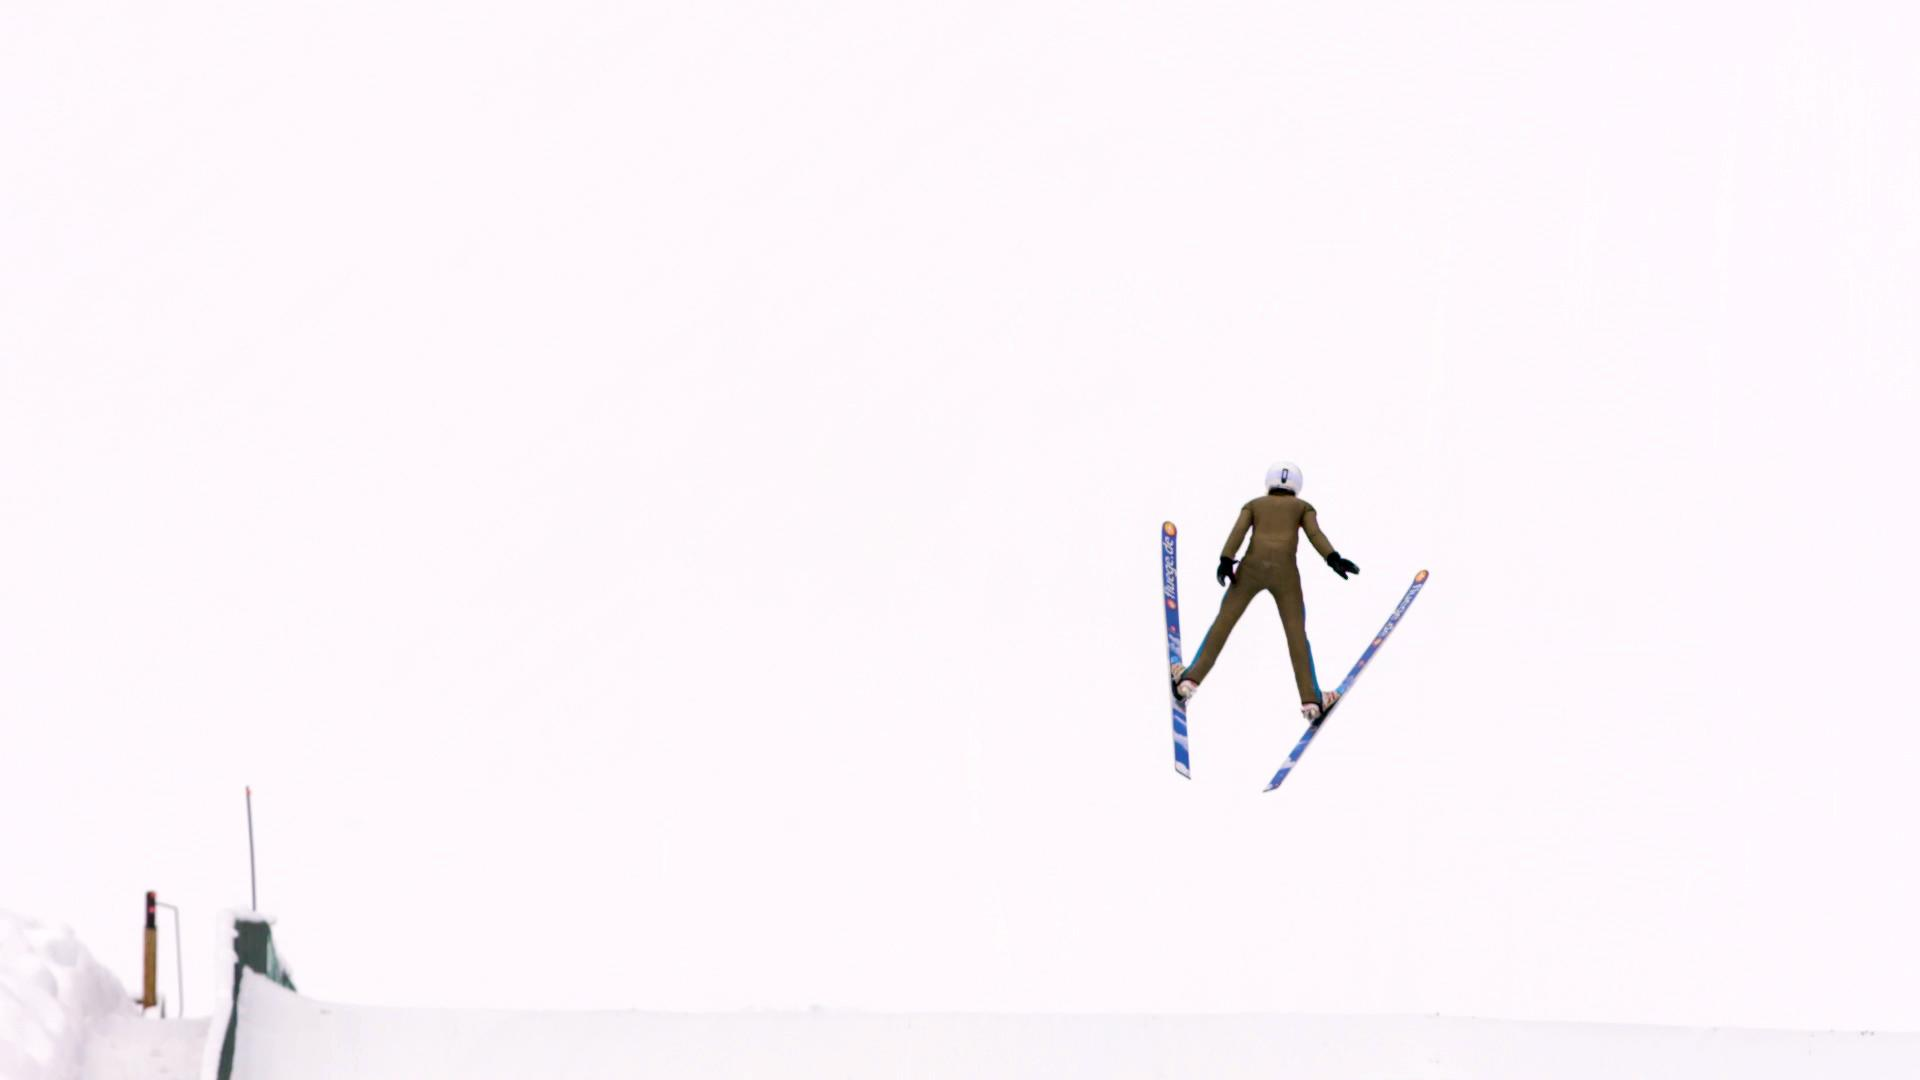 Flying Off Mountains With an Olympic Ski Jumper Video